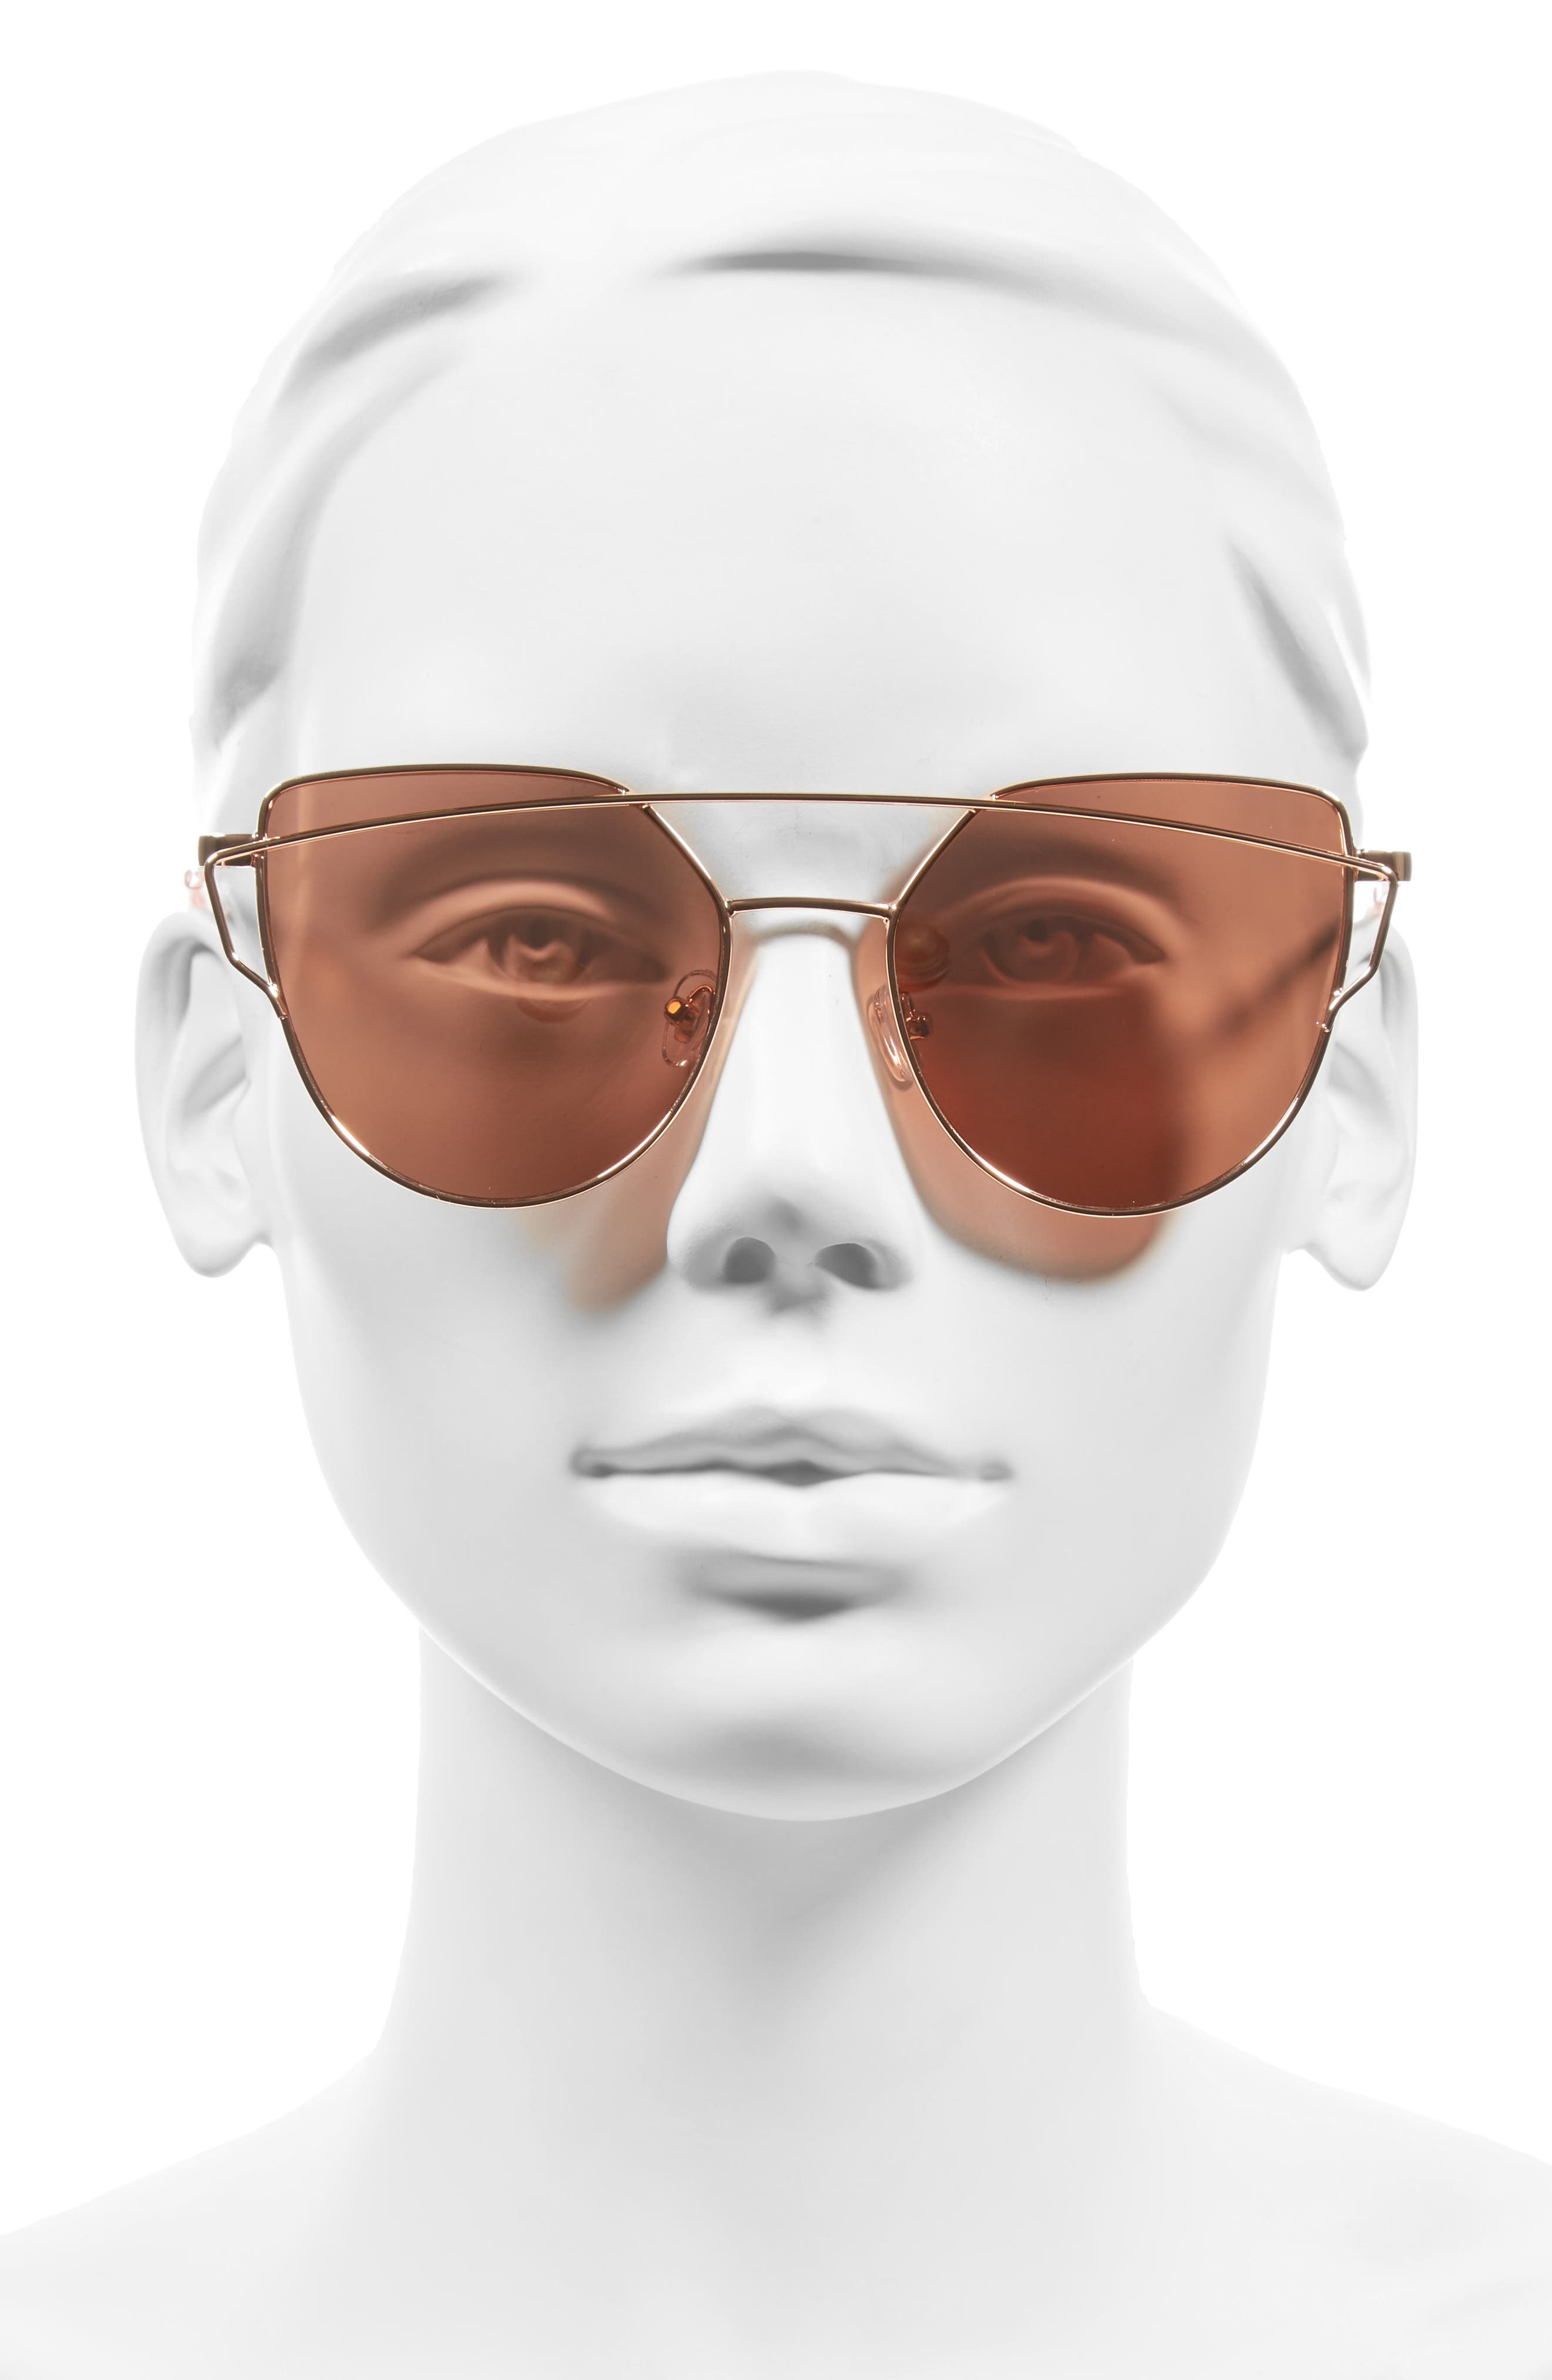 51mm Thin Brow Angular Aviator Sunglasses,                             Alternate thumbnail 21, color,